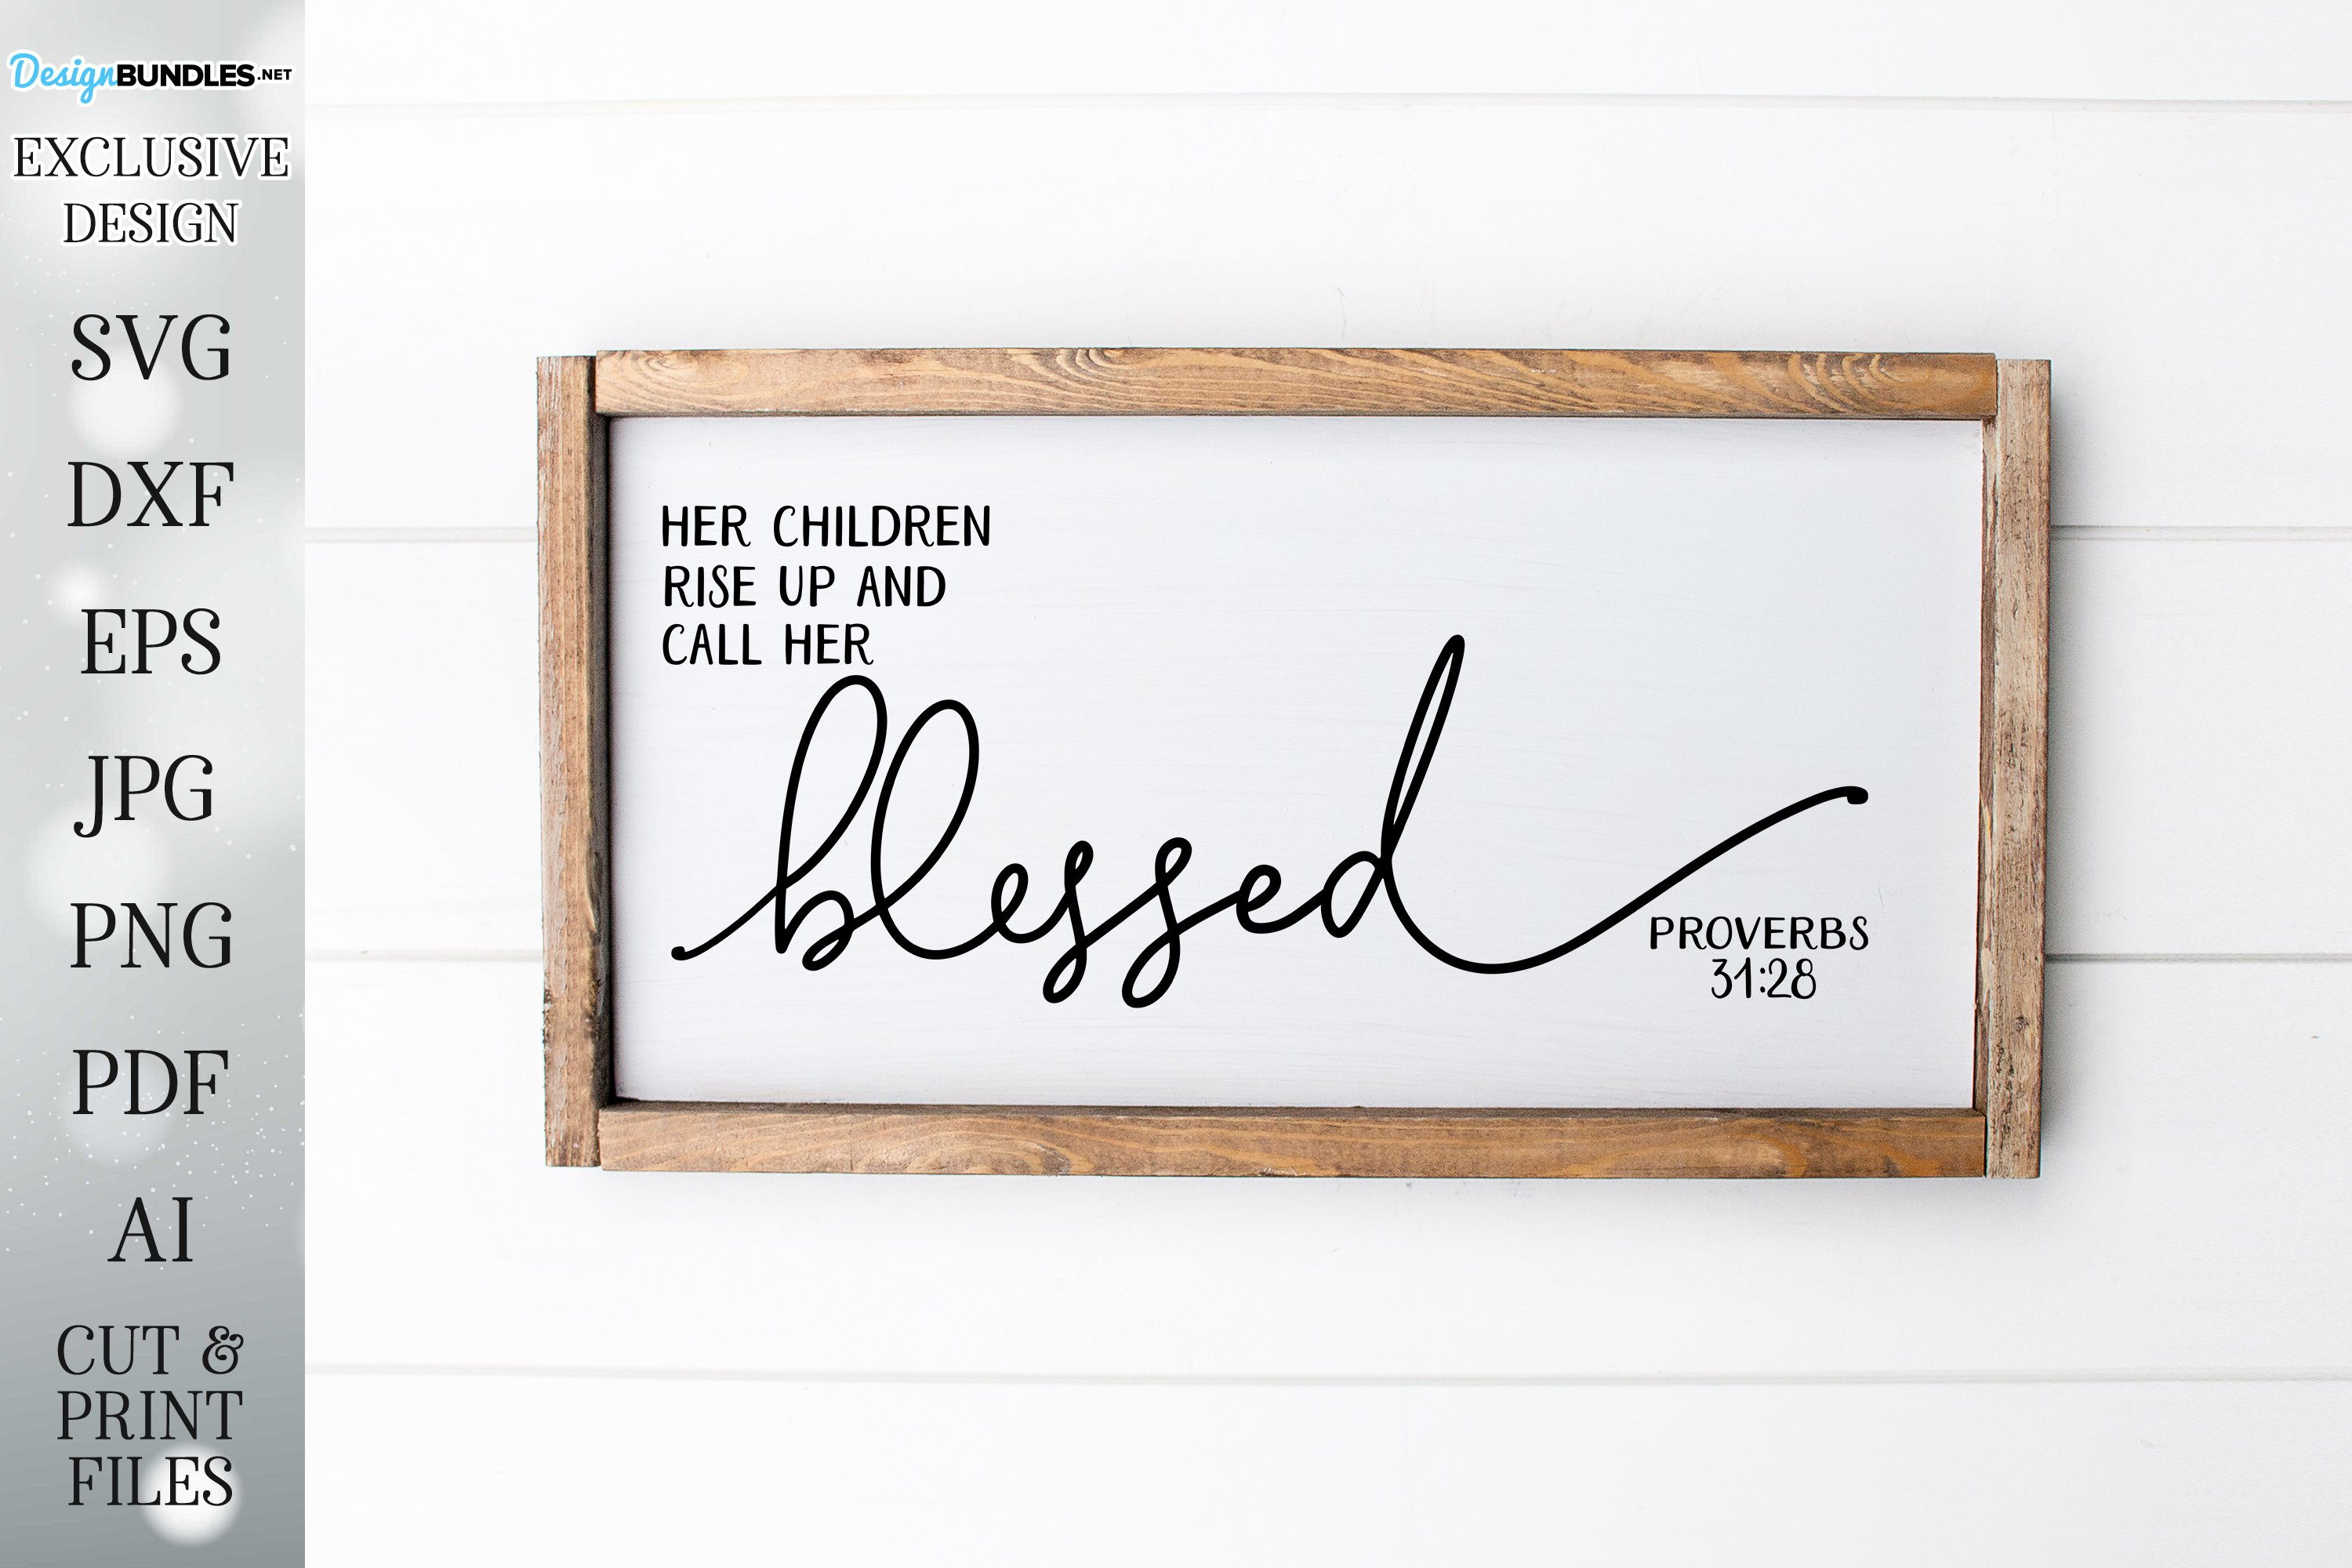 Her Children Rise Up And Call Her Blessed - Farmhouse- Sign example image 1